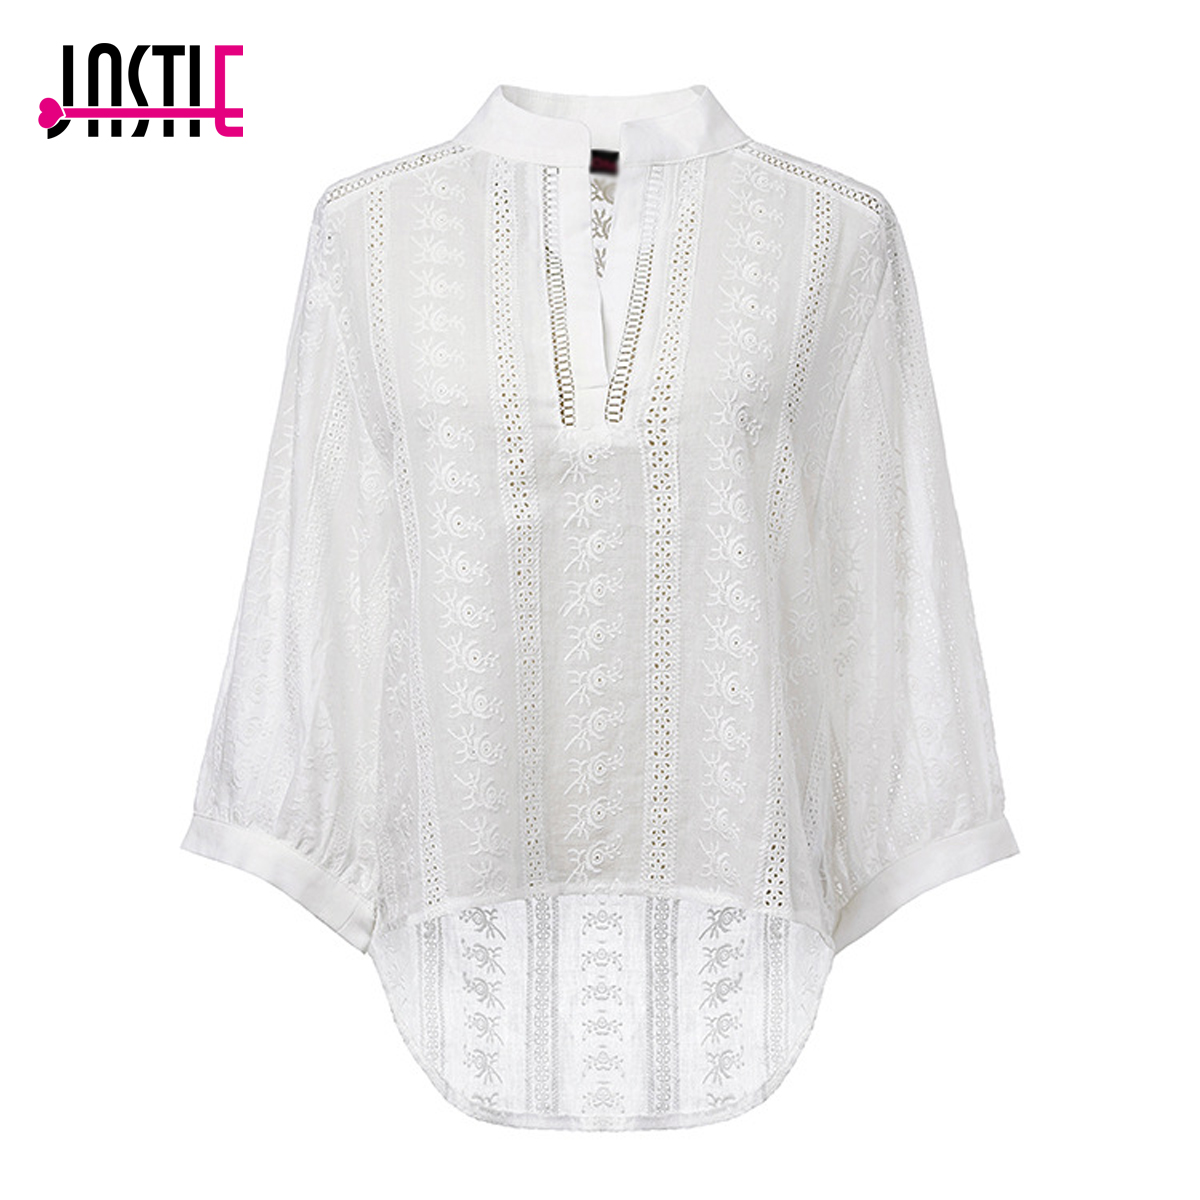 Jastie Spring Summer Blouse Top Floral Embroidered Women Blouses Shirt V-Neck Casual Blusa Patchwork Lace Doll Sweet Shirts Top